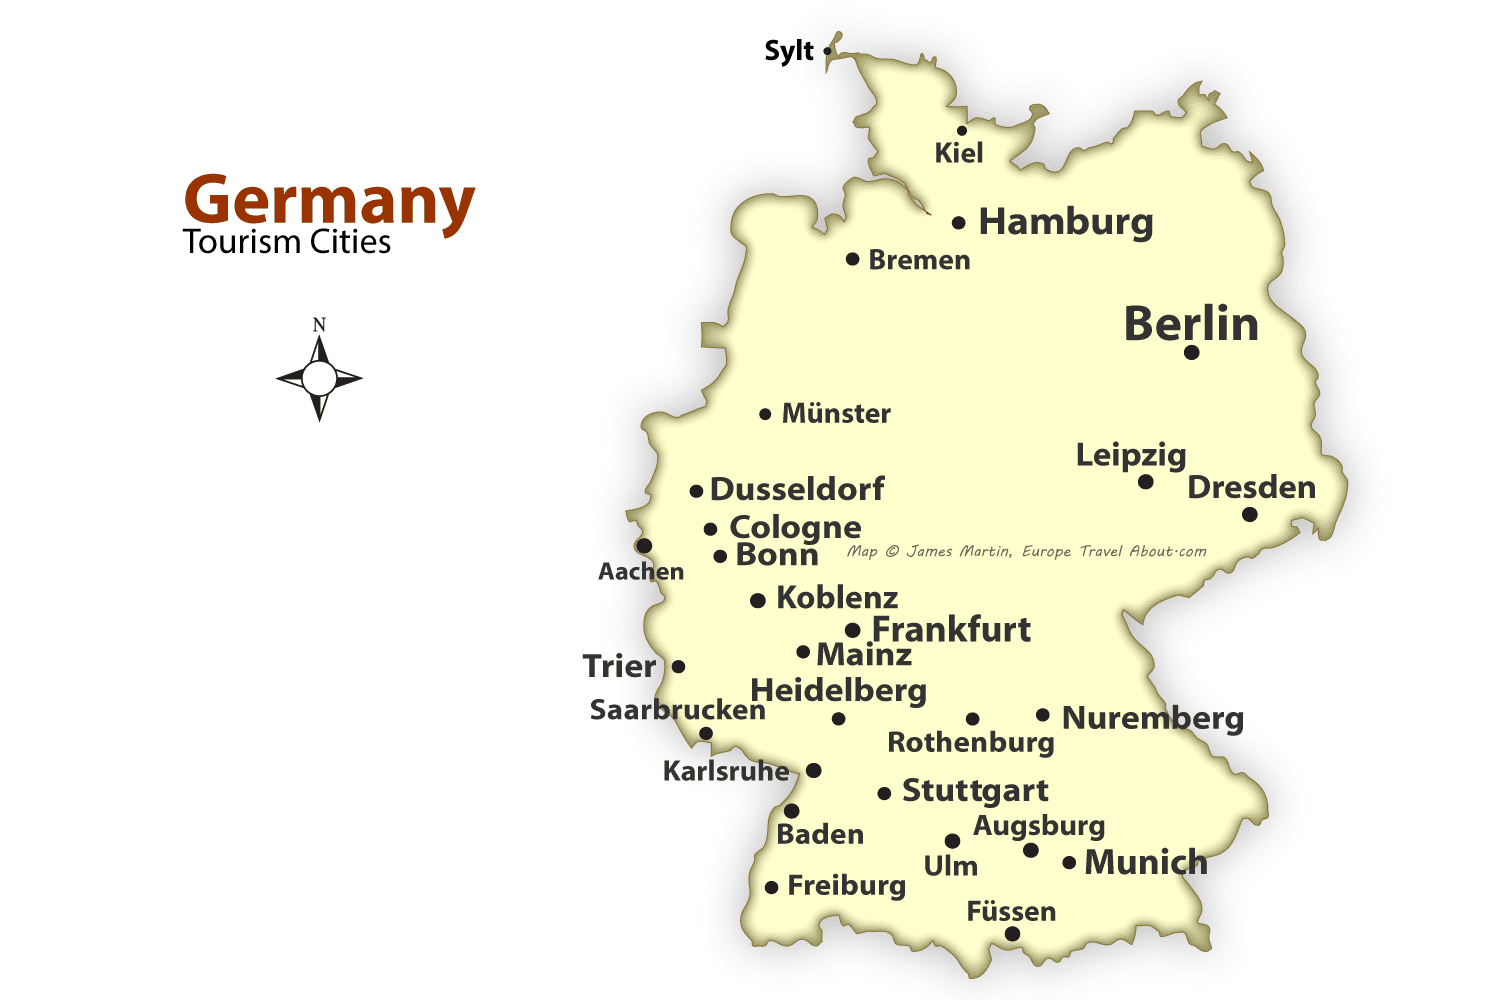 German Cities Map Best Places To Visit In Germany - Germany map ulm